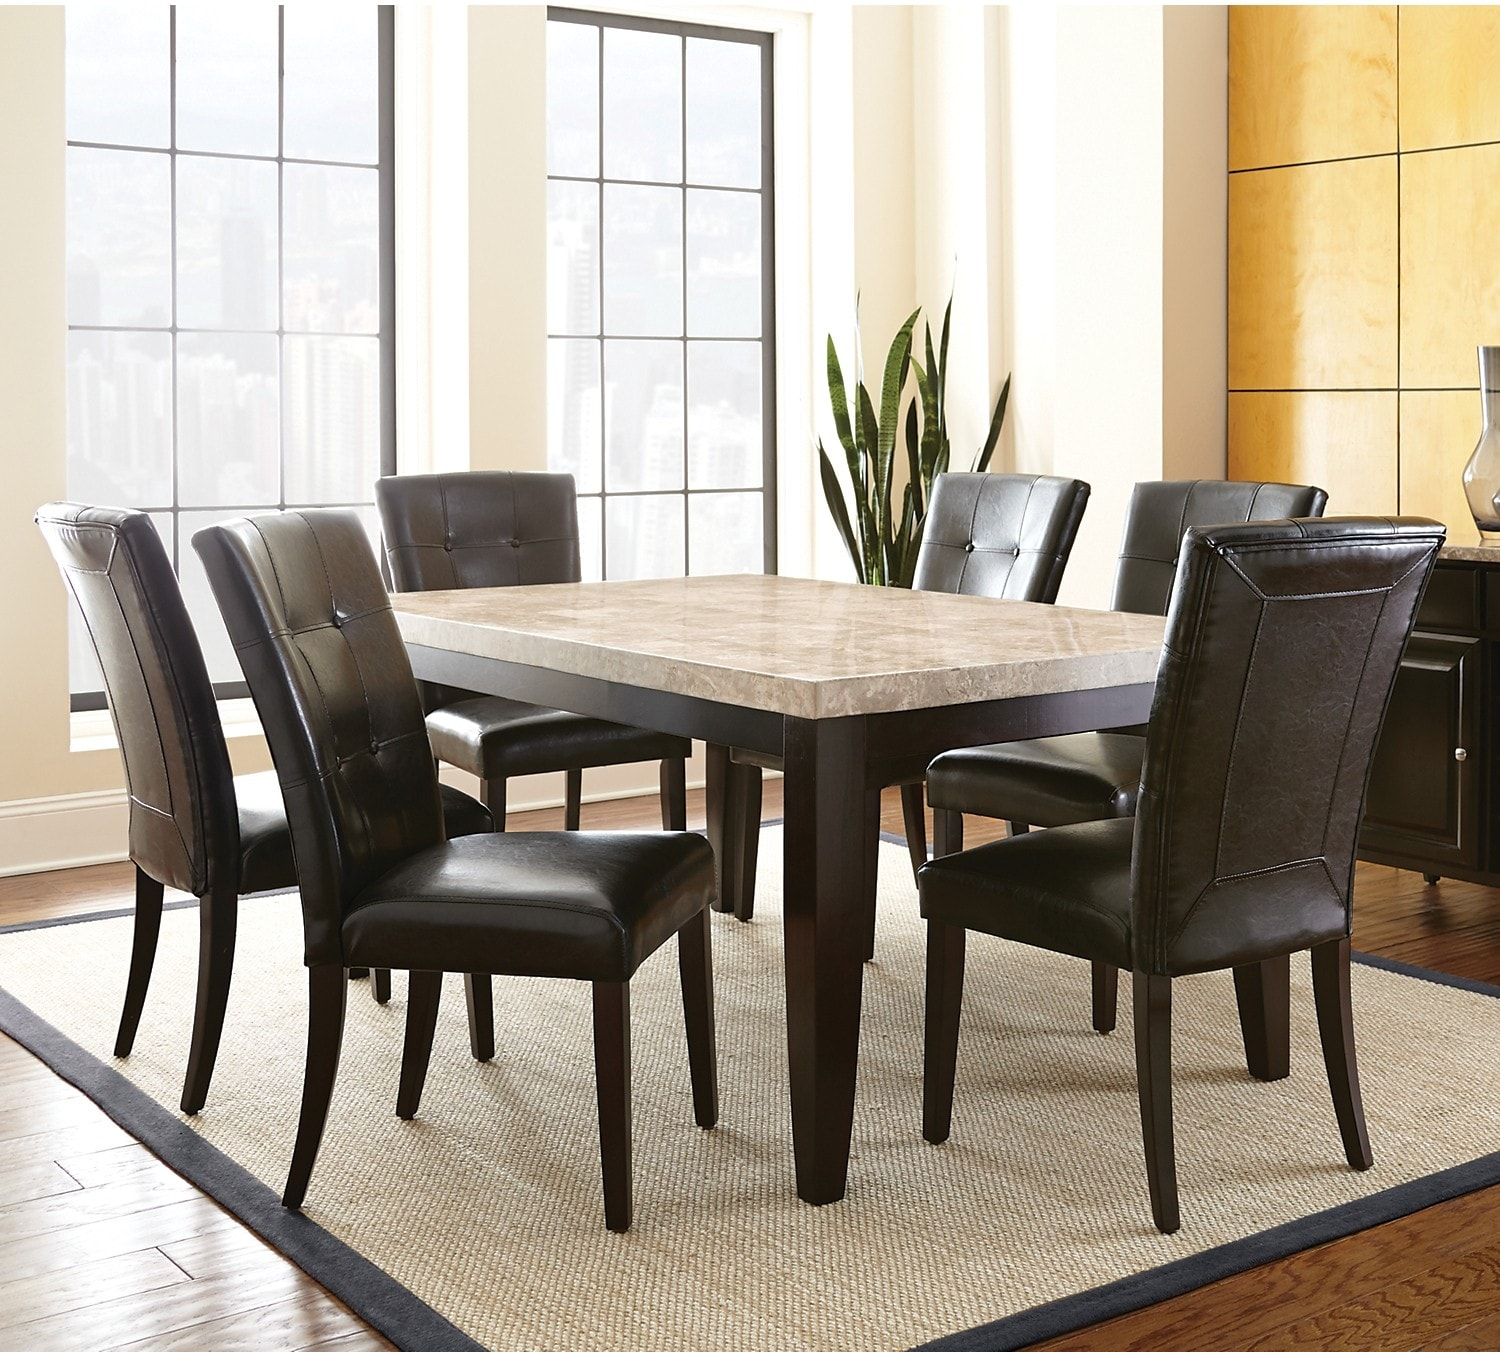 Dining Room Furniture - Dursley 7-Piece Dining Package